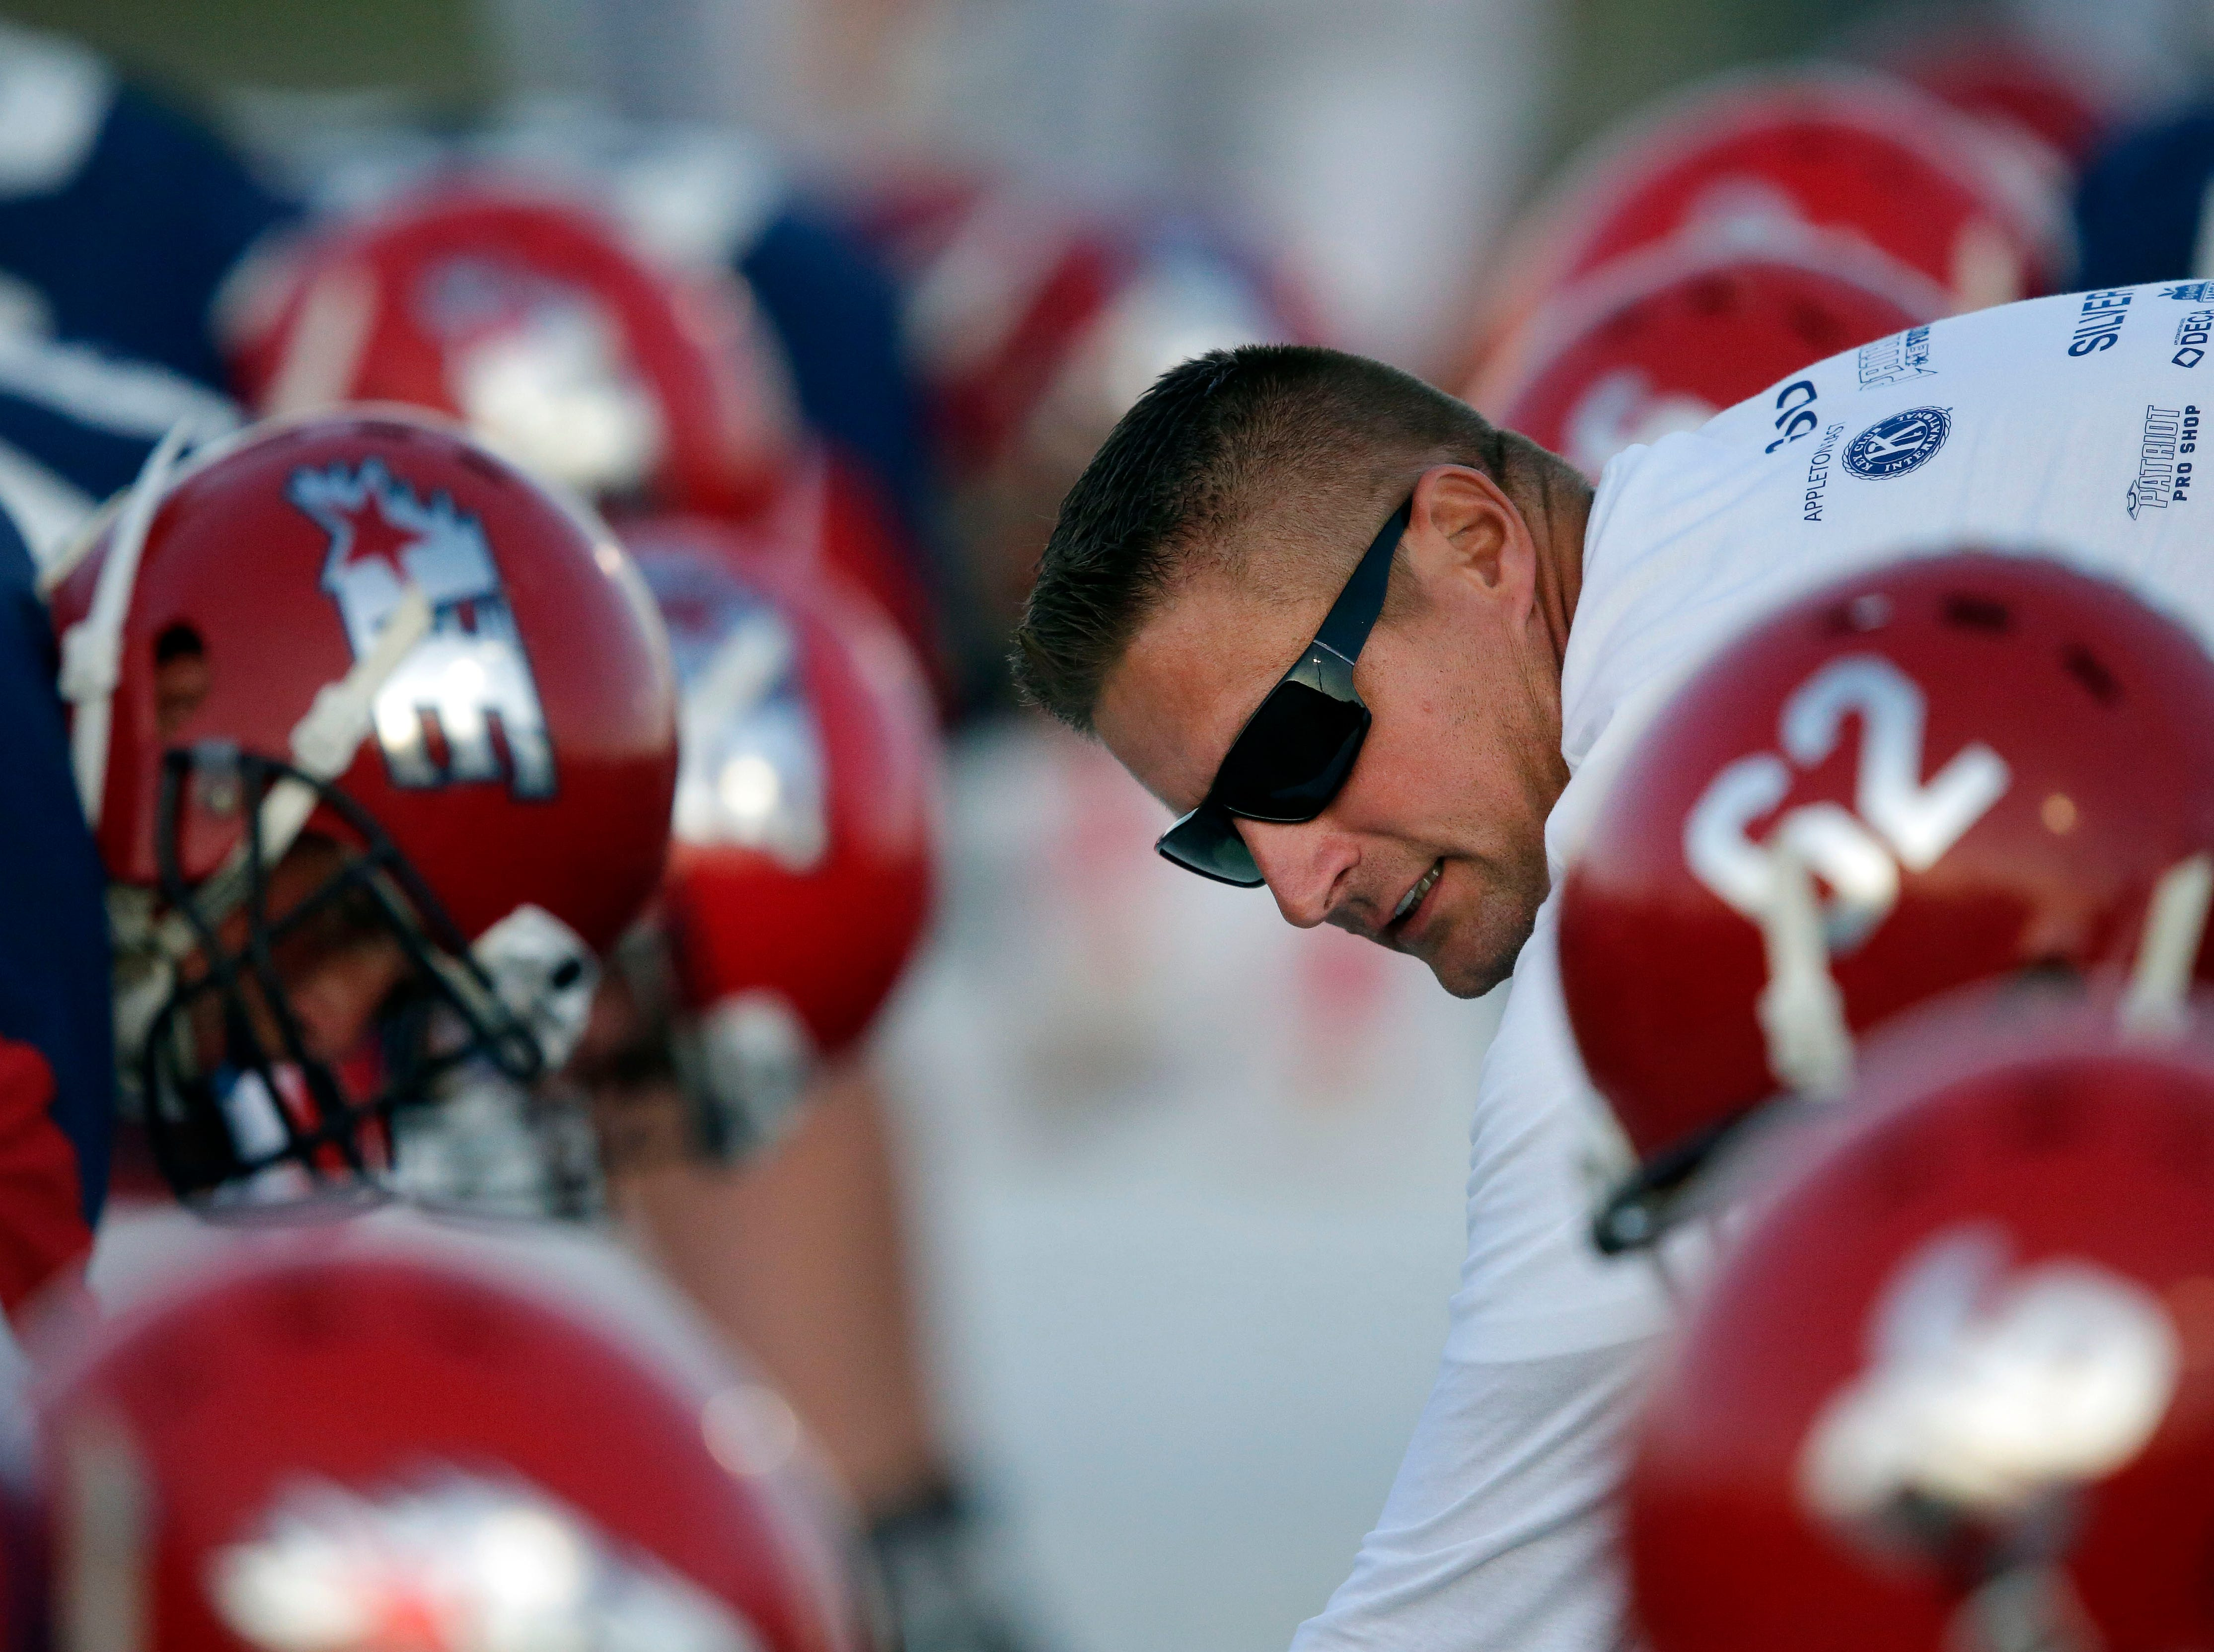 A coach leads Appleton East players through drills before taking on Appleton North in a Valley Football Association game Friday, September 14, 2018, at Appleton East High School in Appleton, Wis.Ron Page/USA TODAY NETWORK-Wisconsin